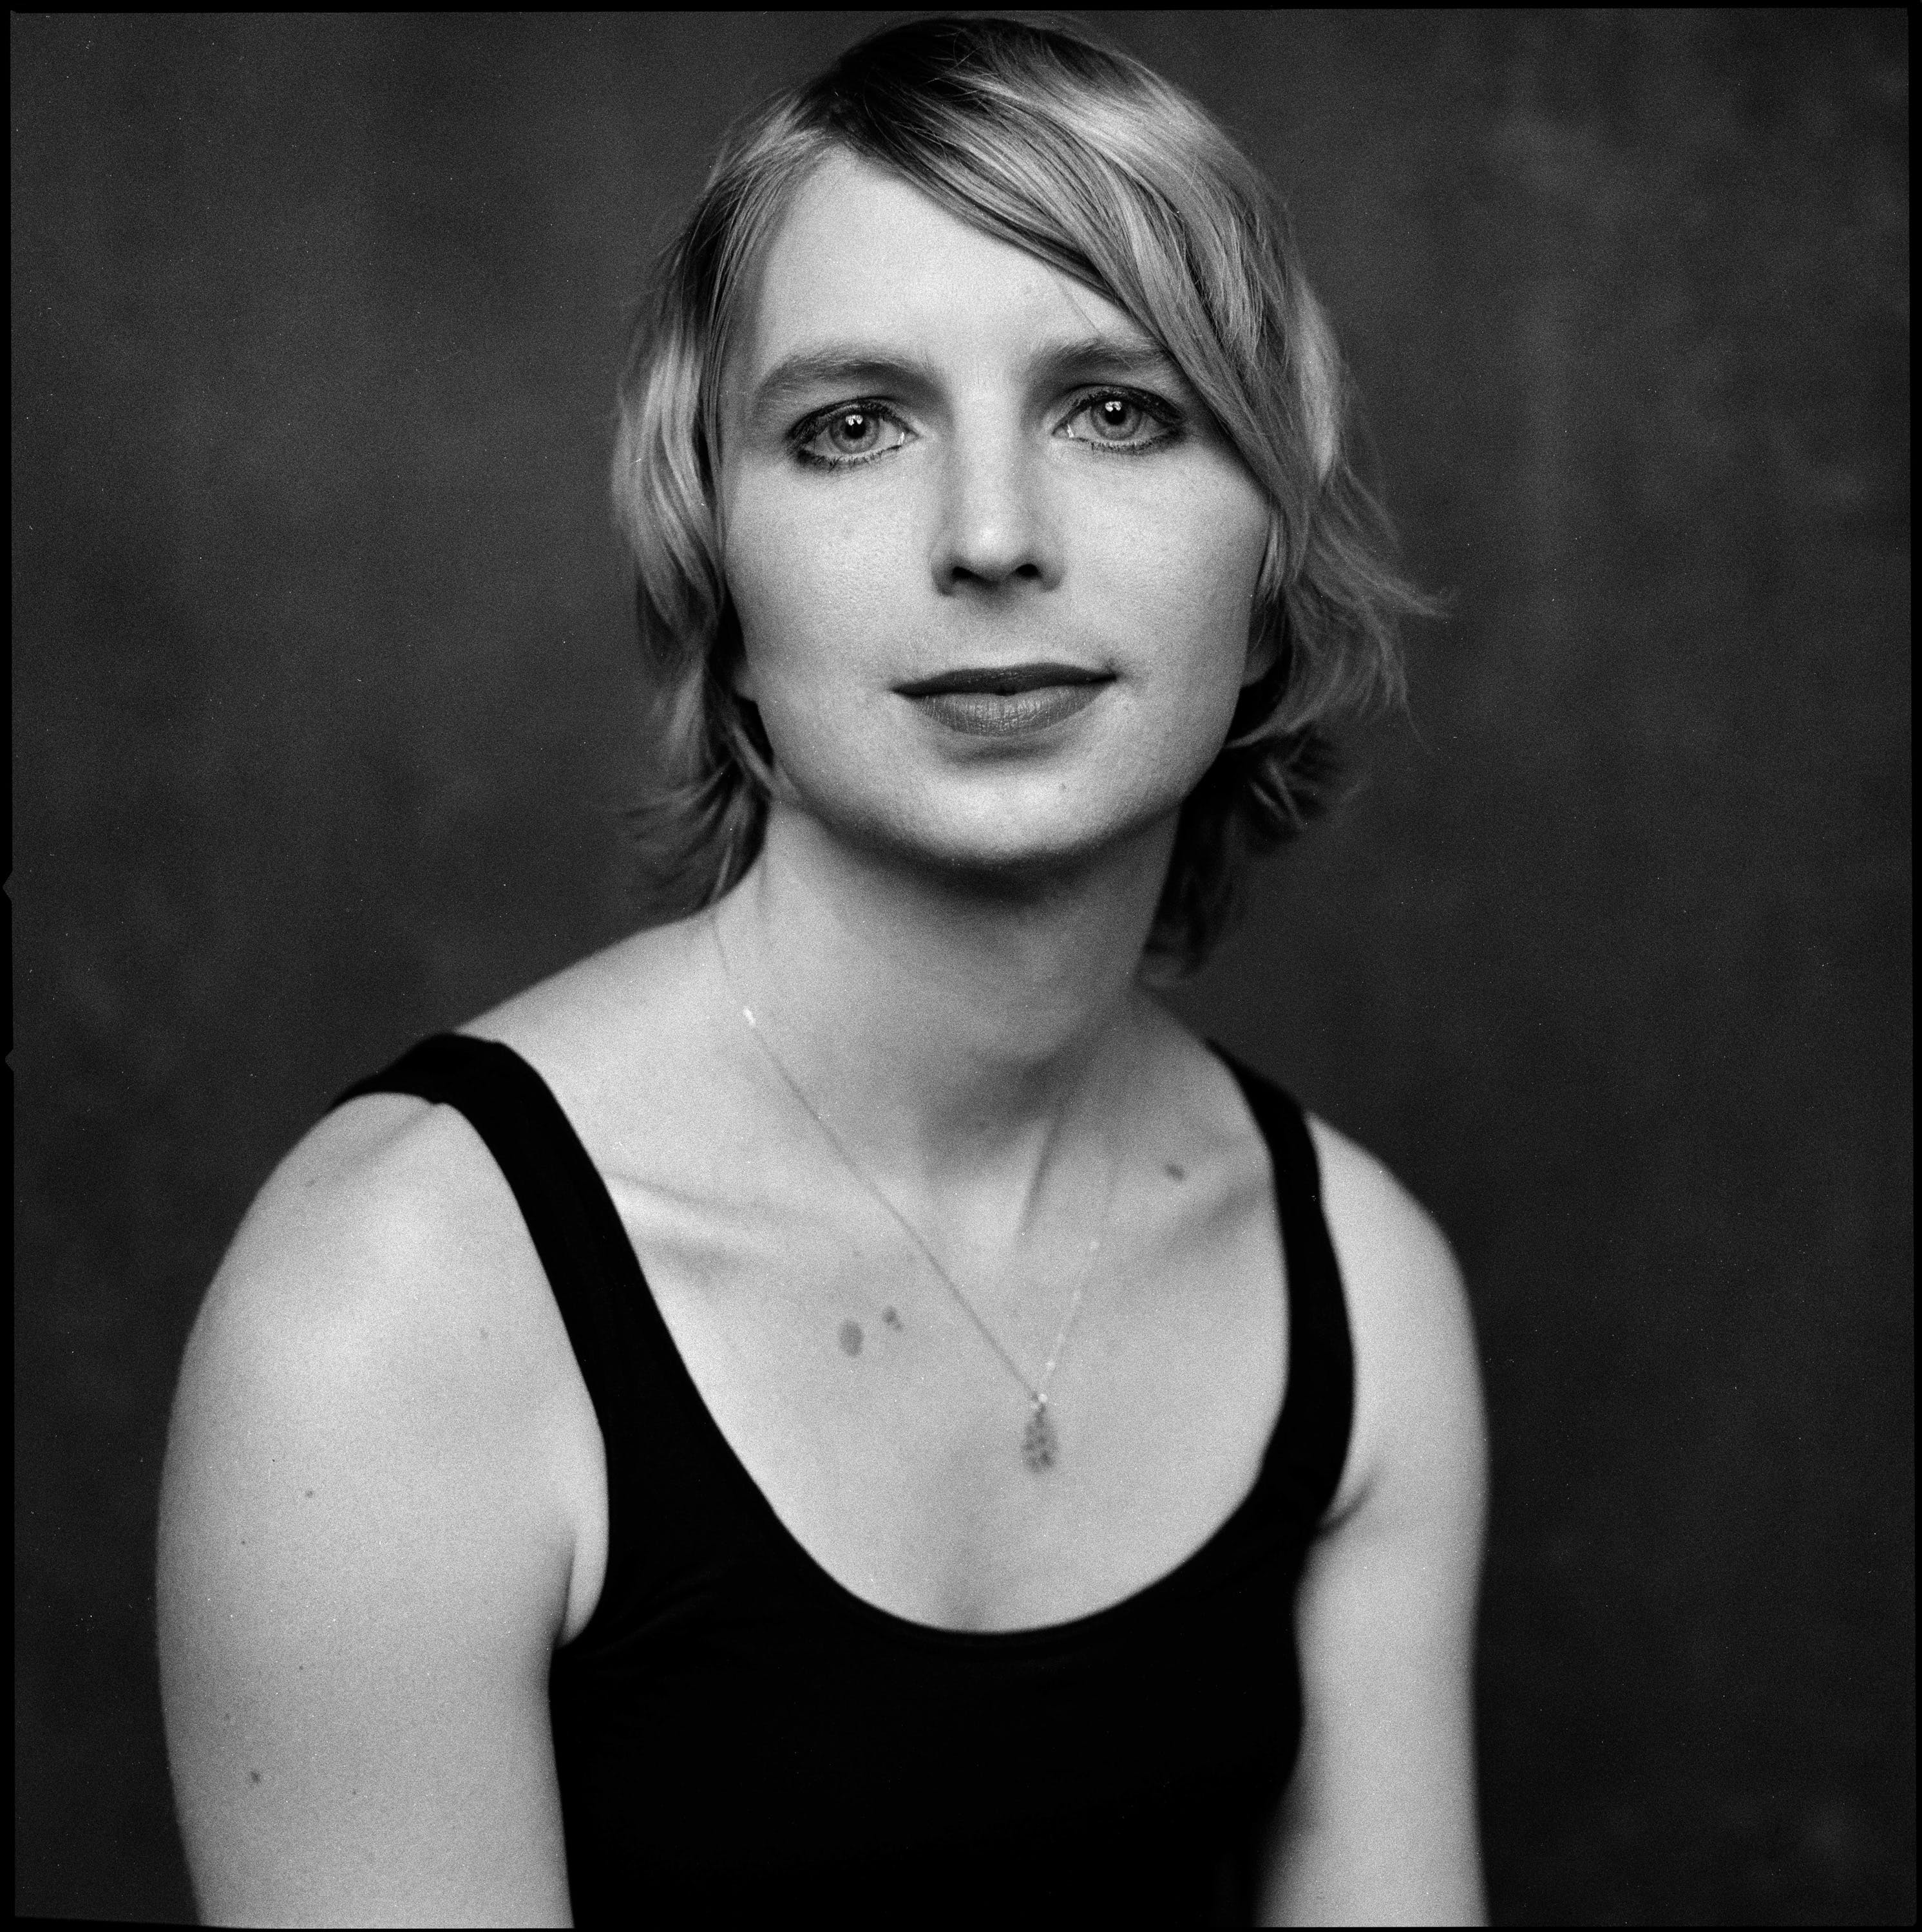 Chelsea Manning, a former United States Army soldier who was convicted by court-martial in July 2013 of violations of the Espionage Act and other offenses, after disclosing to WikiLeaks nearly 750,000 classified, or unclassified but sensitive, military and diplomatic documents. Photographed in Washington DC.